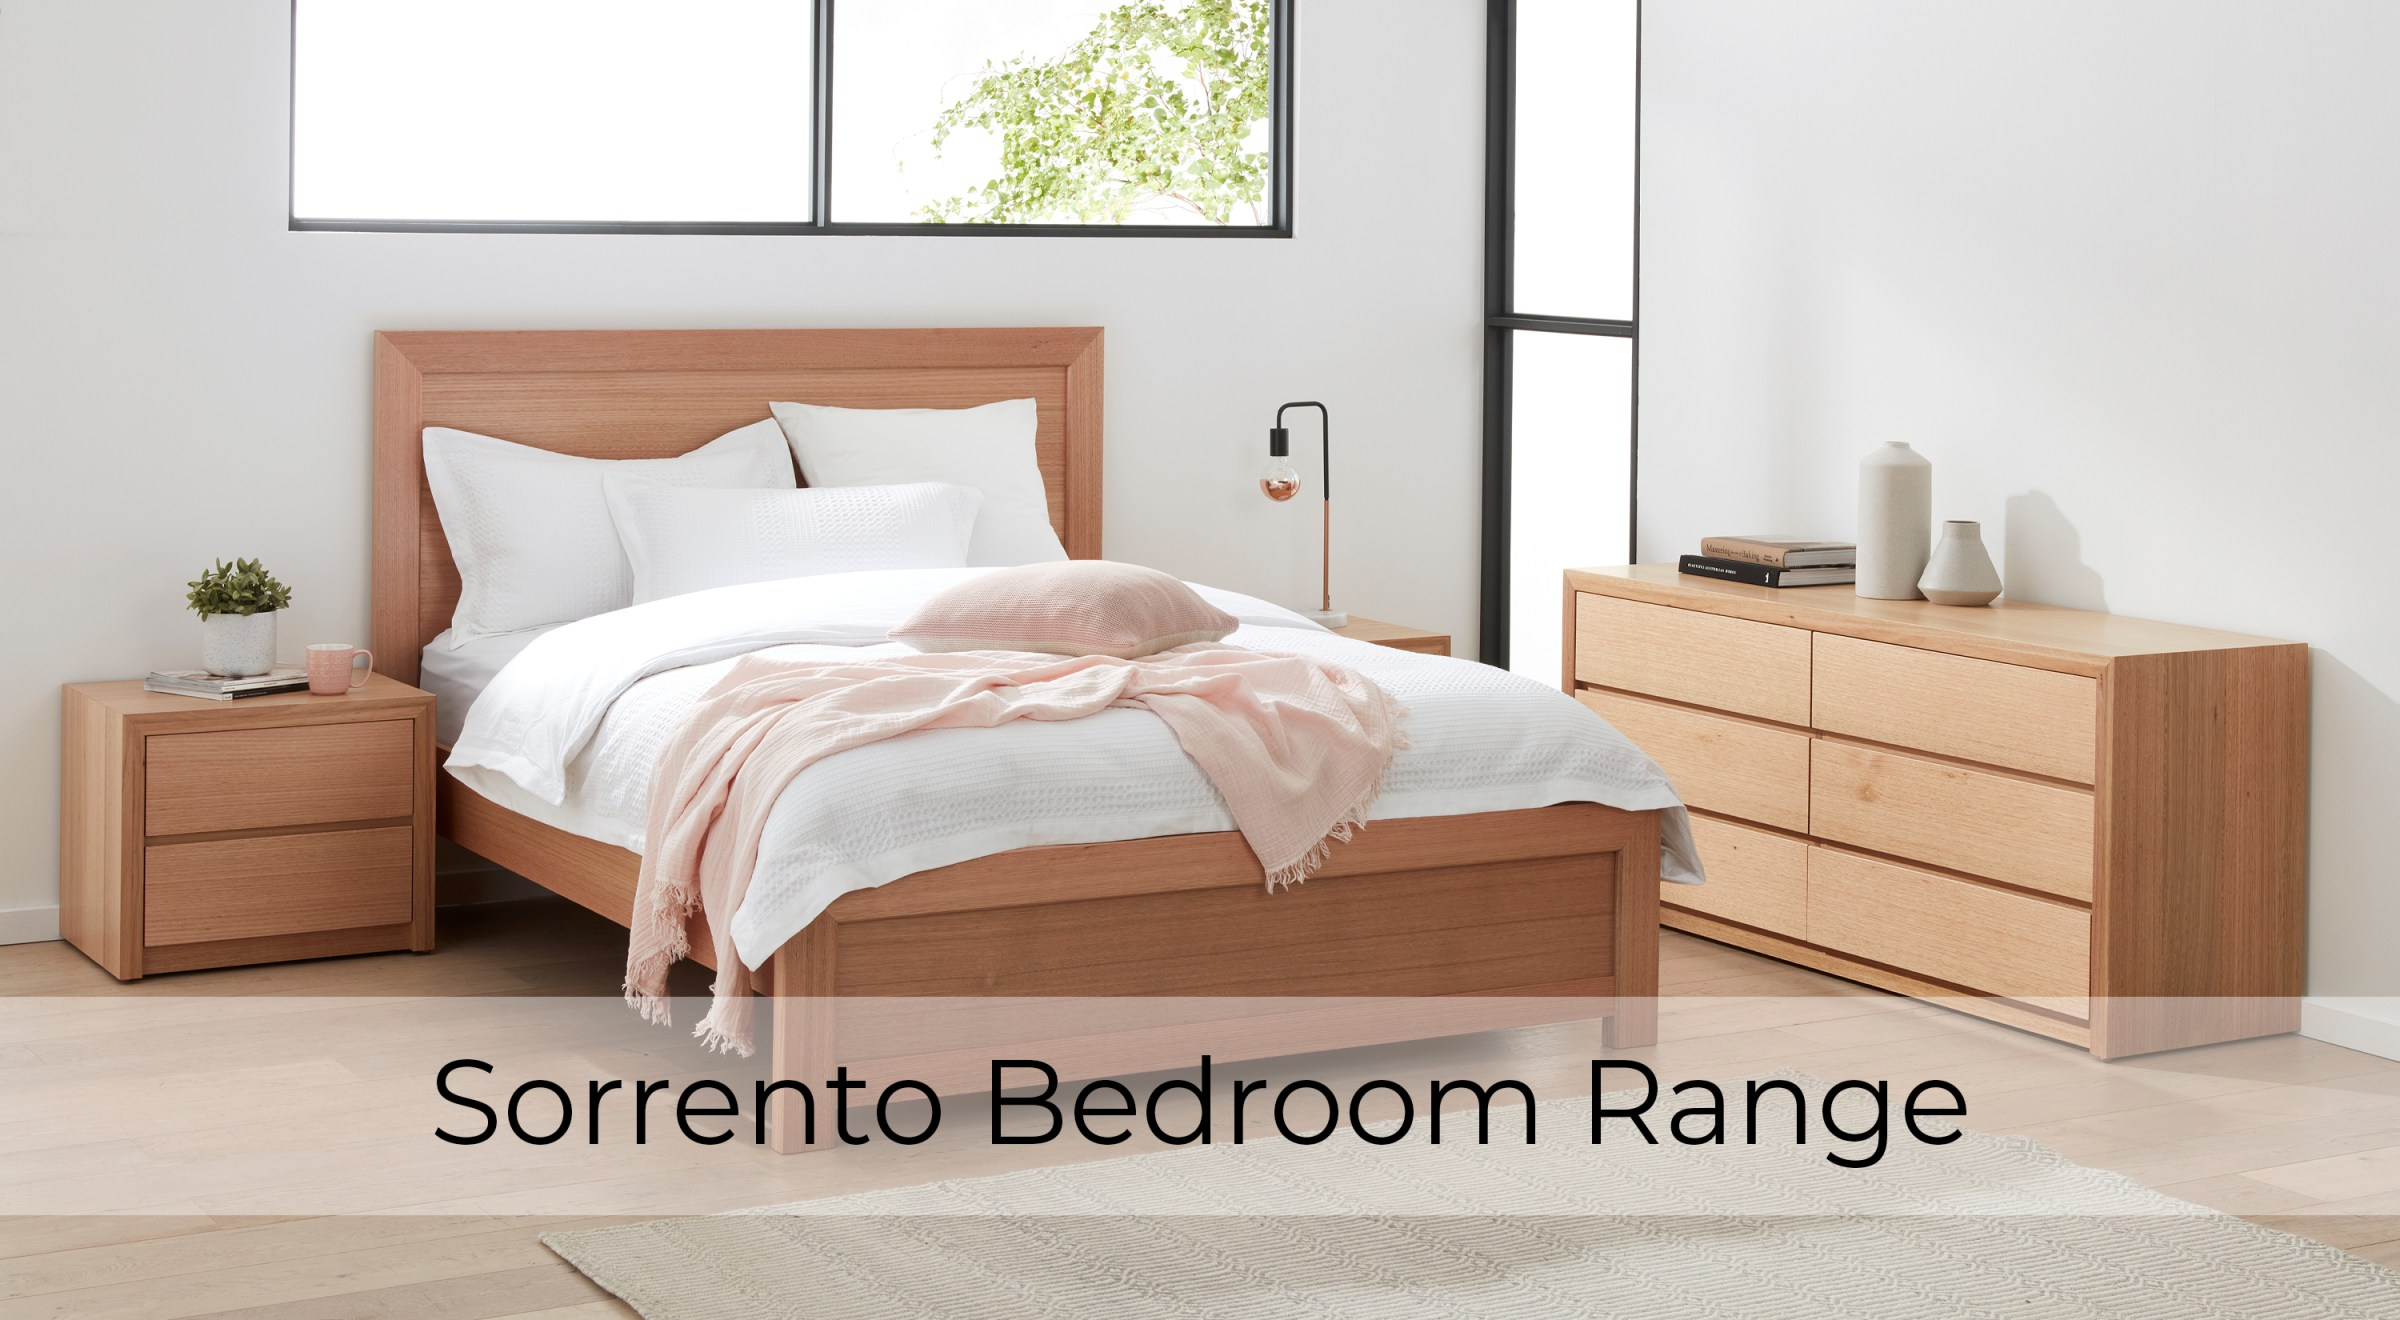 Sorrento Tasmanian Oak Bedroom Furniture by Astra Furniture